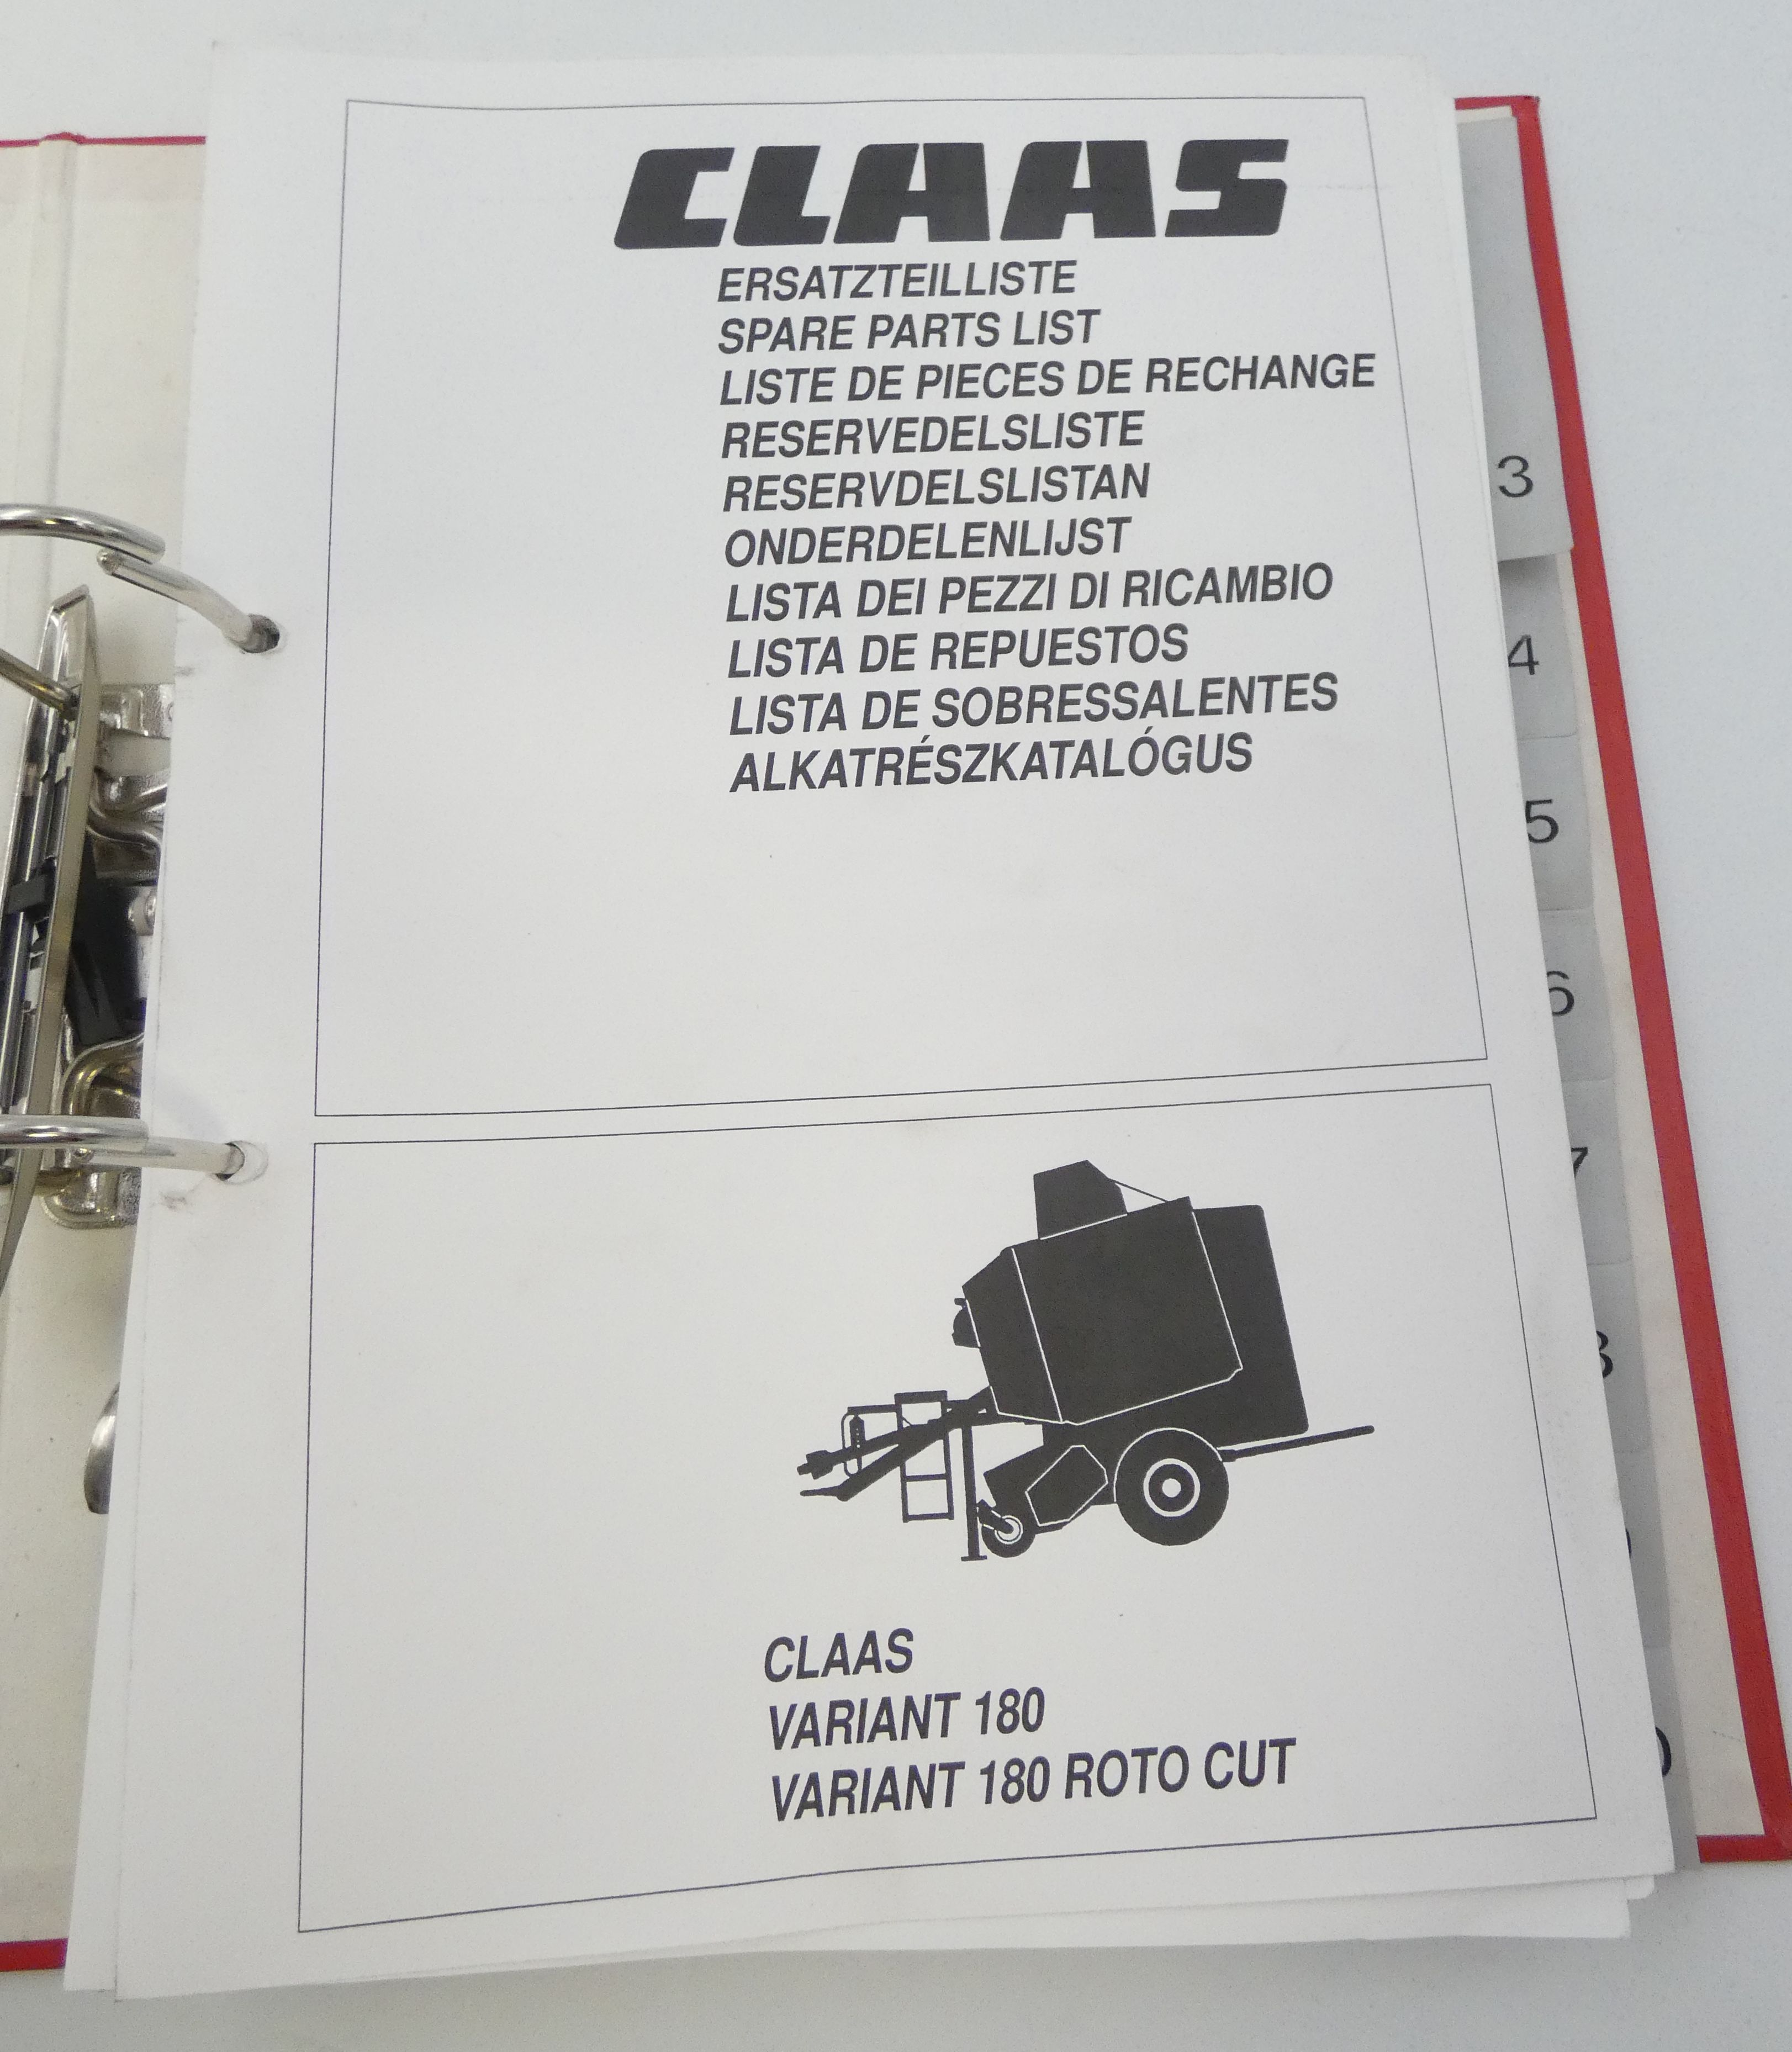 Claas Variant 180, Variant 80 proto cut spare part list